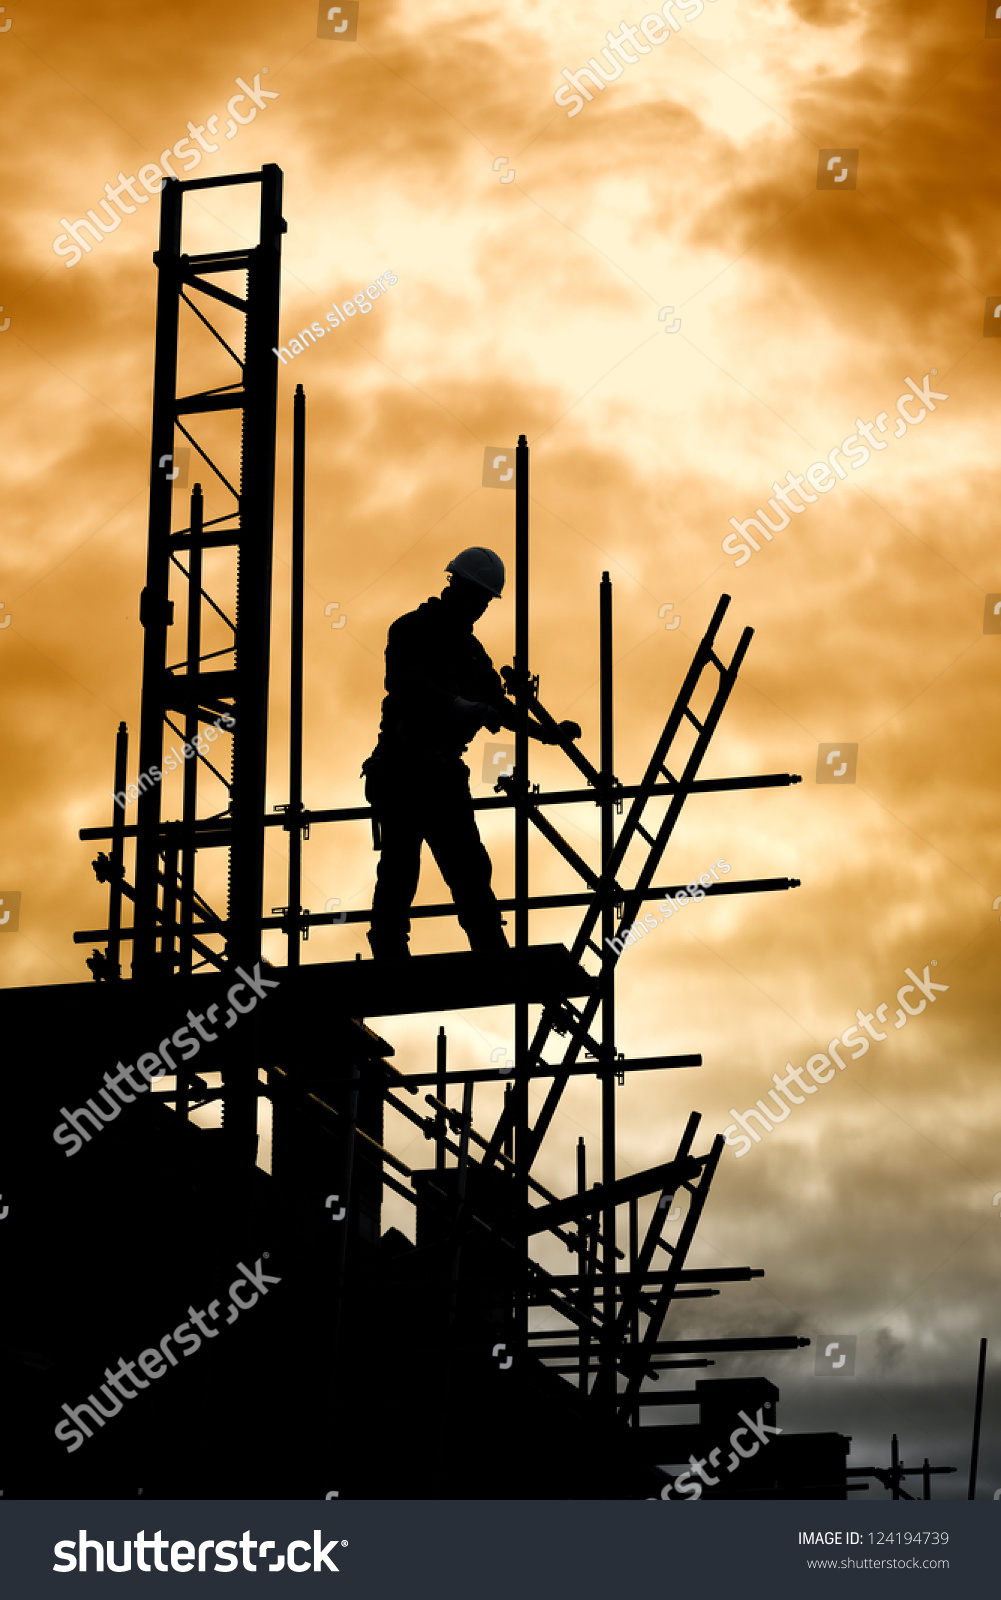 builder silhouette construction worker on scaffold stock photo builder silhouette of construction worker on scaffold